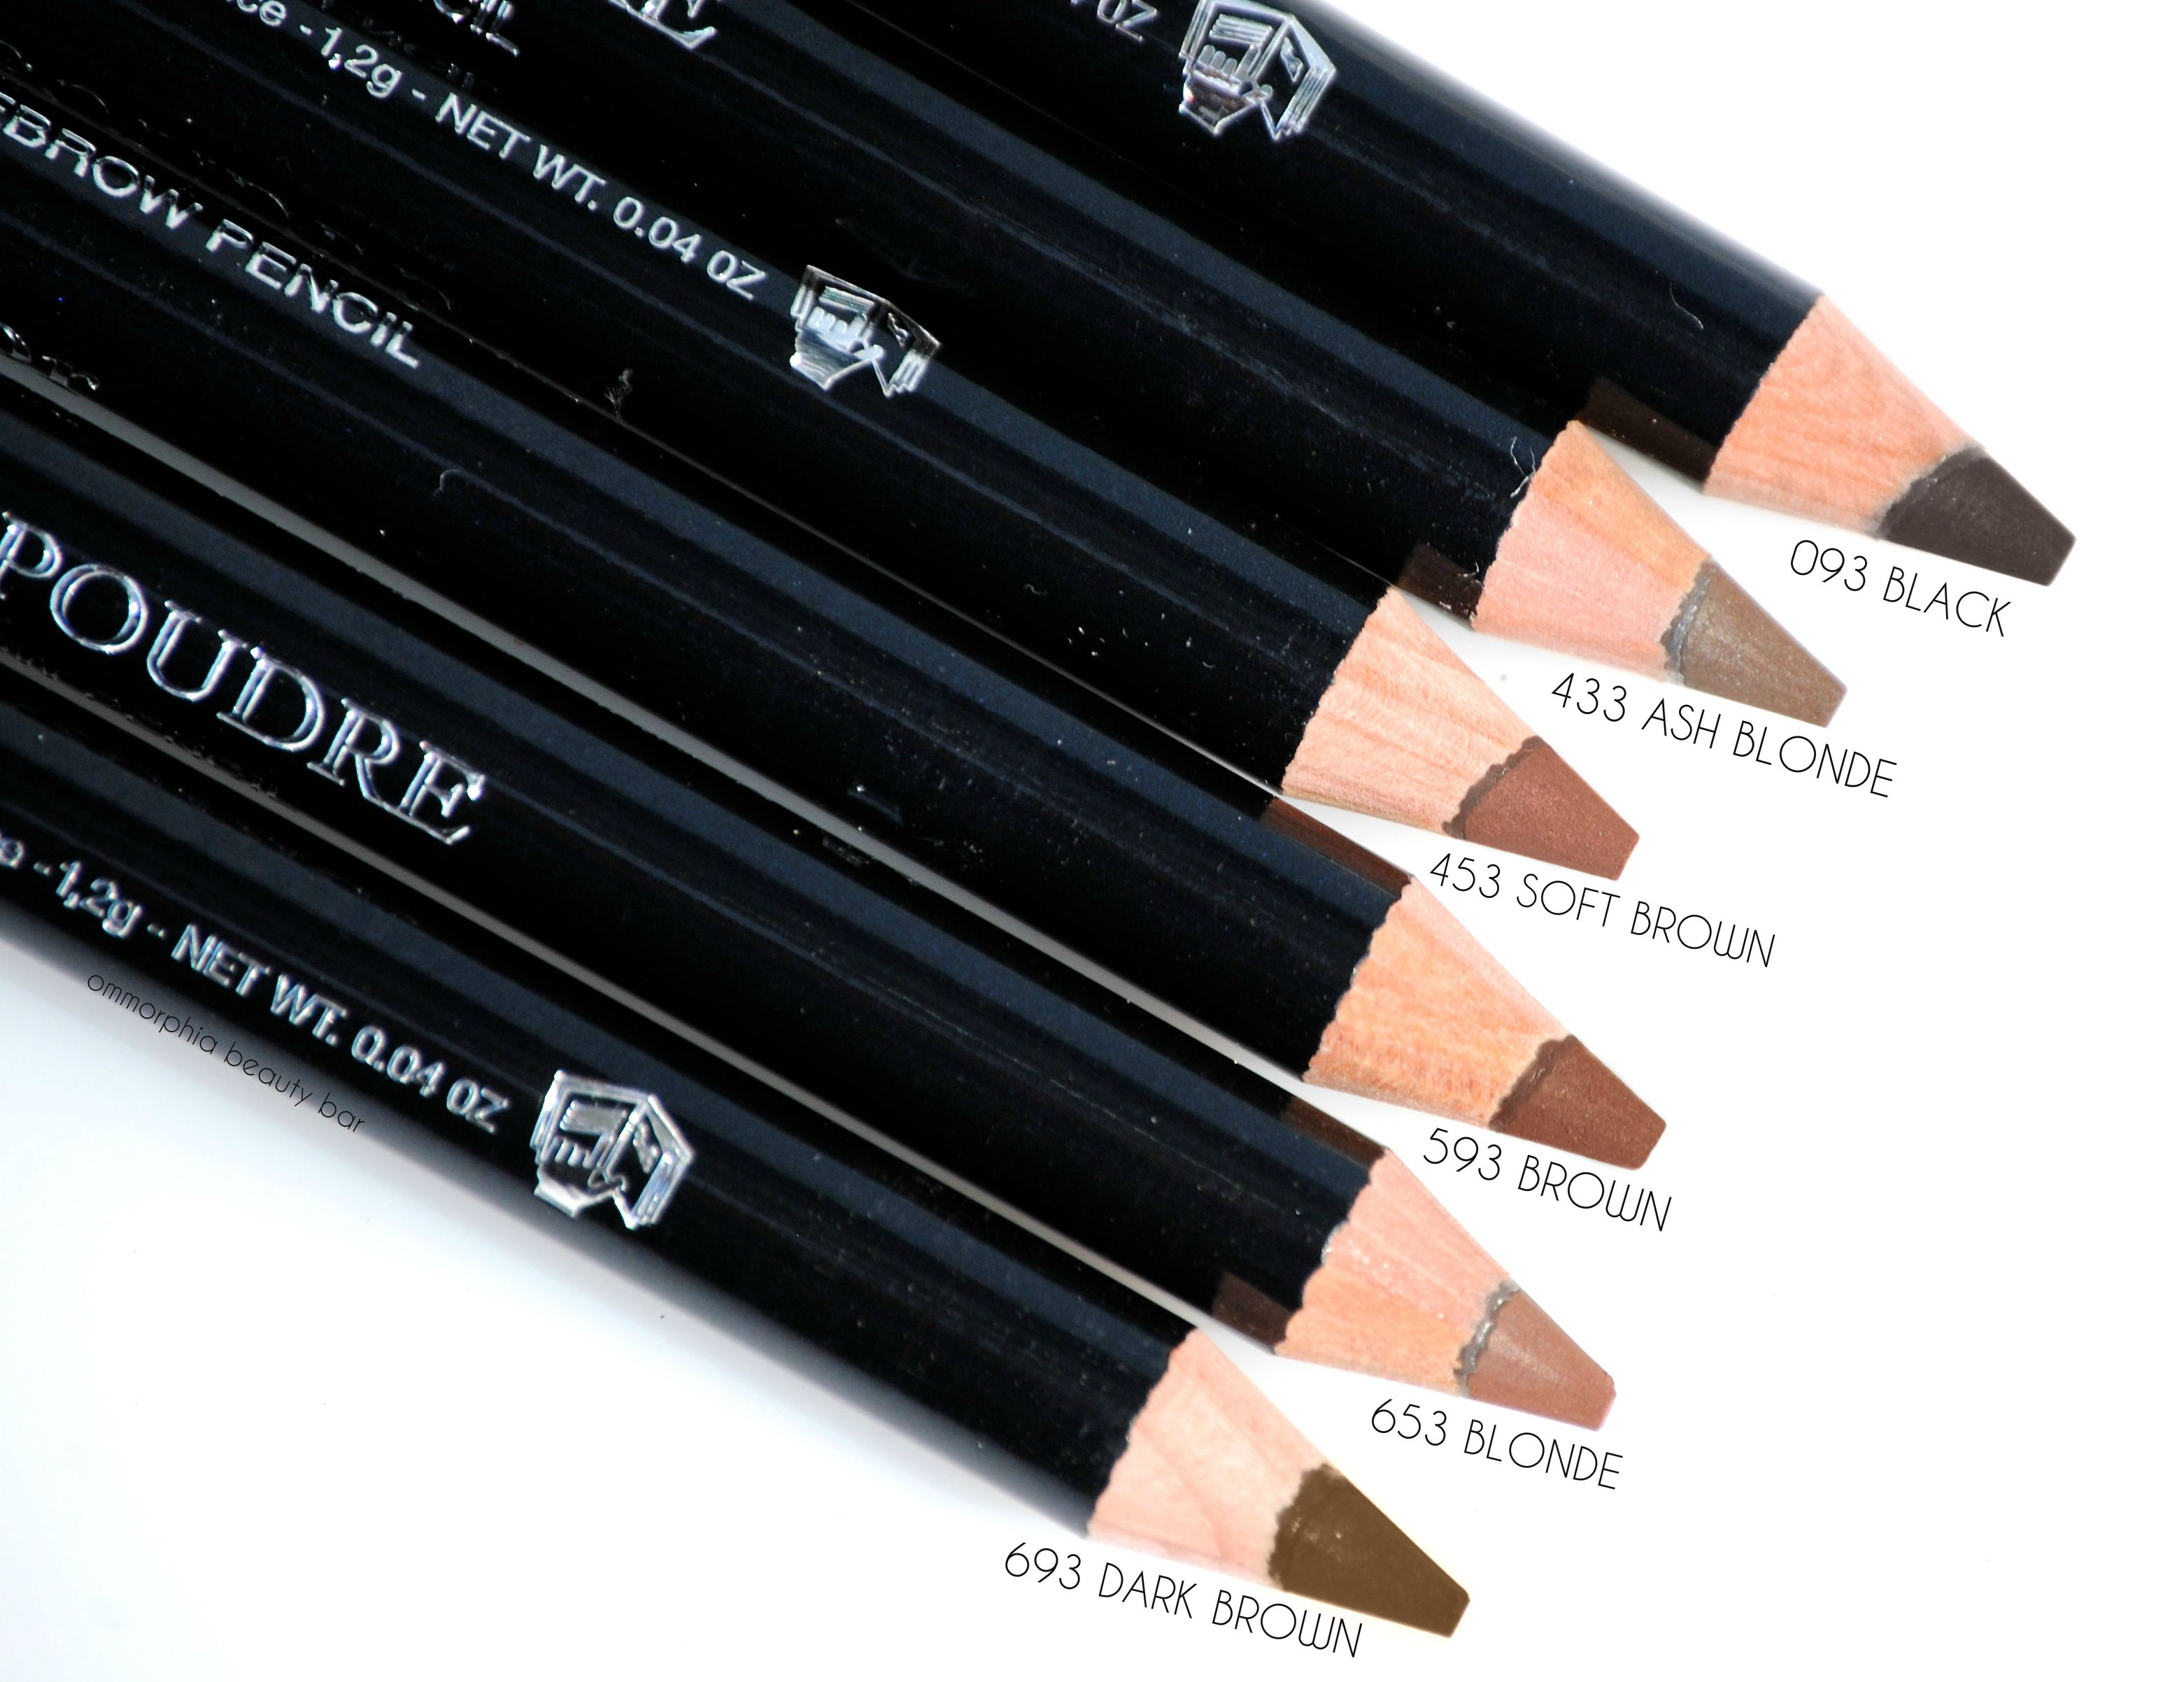 4b75f5d8 Dior | Powder Eyebrow Pencils | ommorphia beauty bar | Bloglovin'